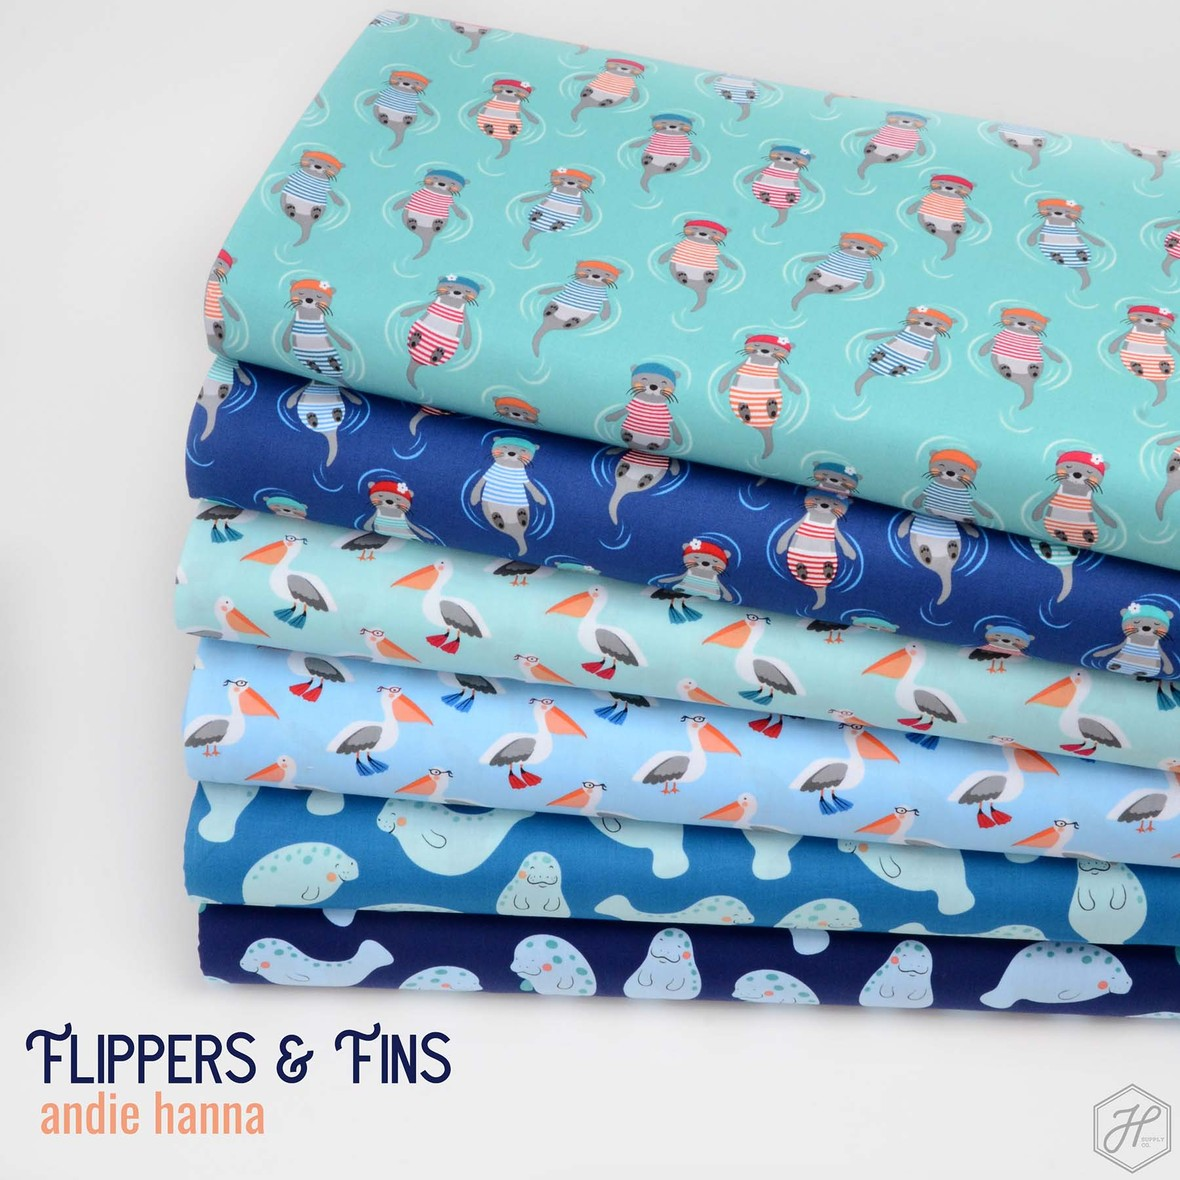 Flippers and Fins Fabric Poster Andie Hanna at Hawthorne Supply Co